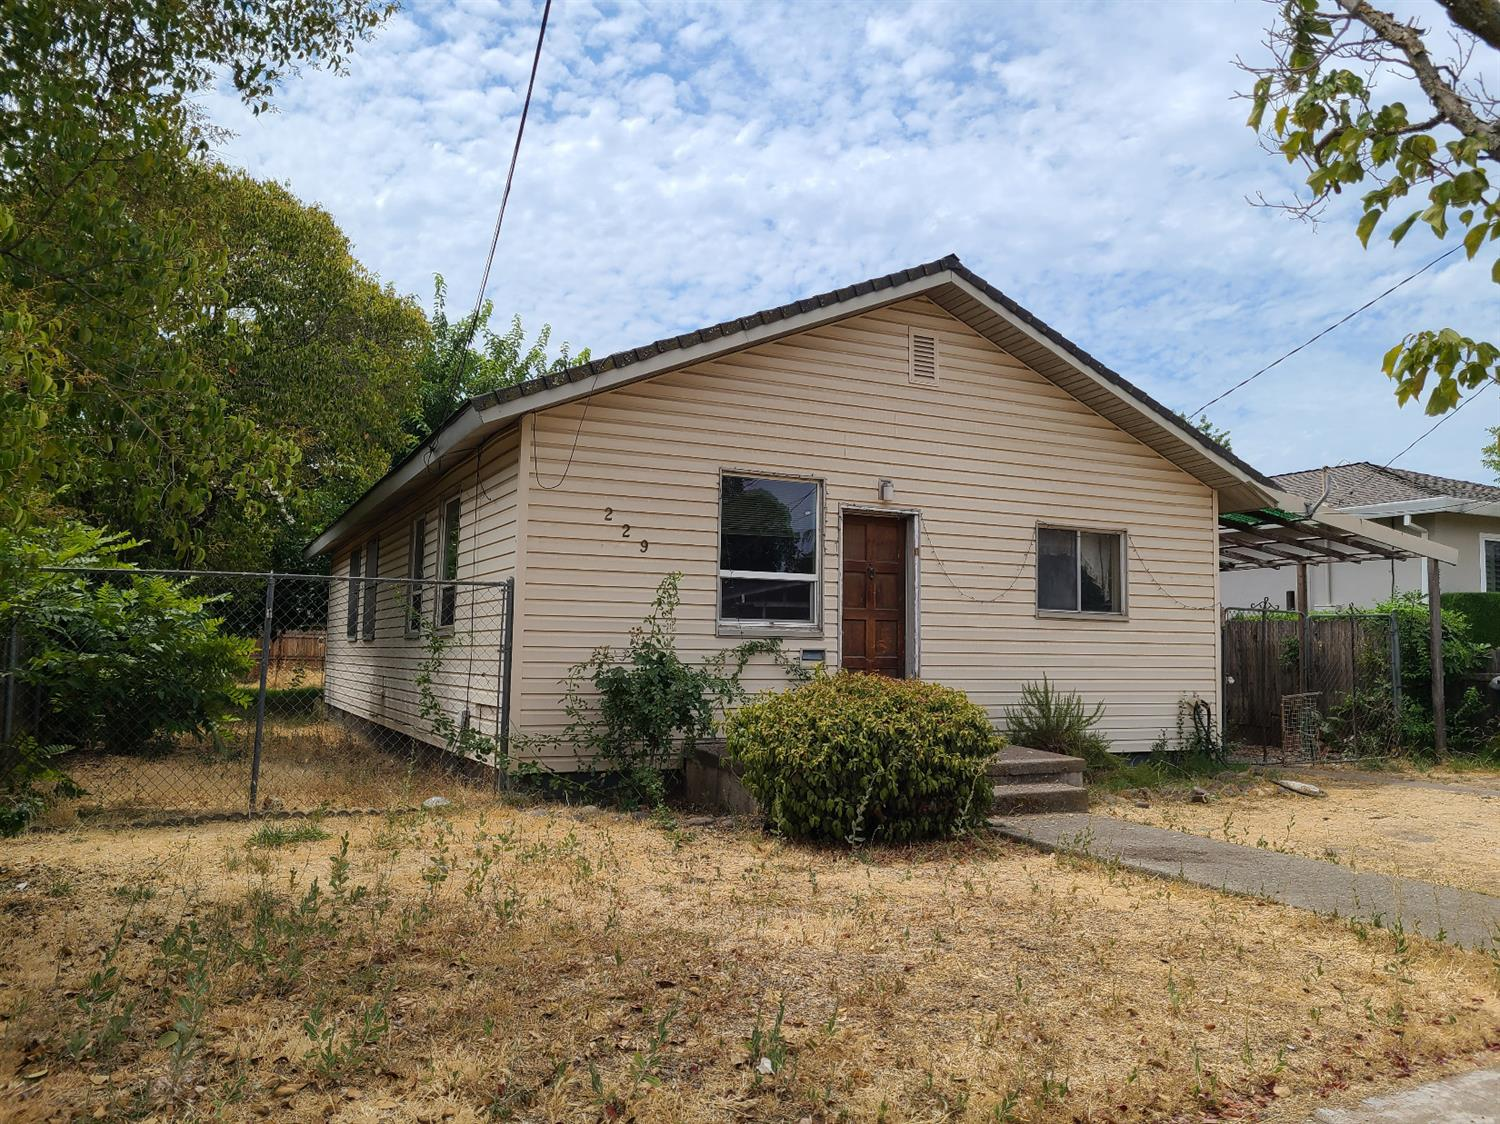 Fixer/rehab opportunity in popular area of Roseville! Seeking builders and contractors to turn this 40's bungalow back to its former glory! Lovely street, spacious lot!